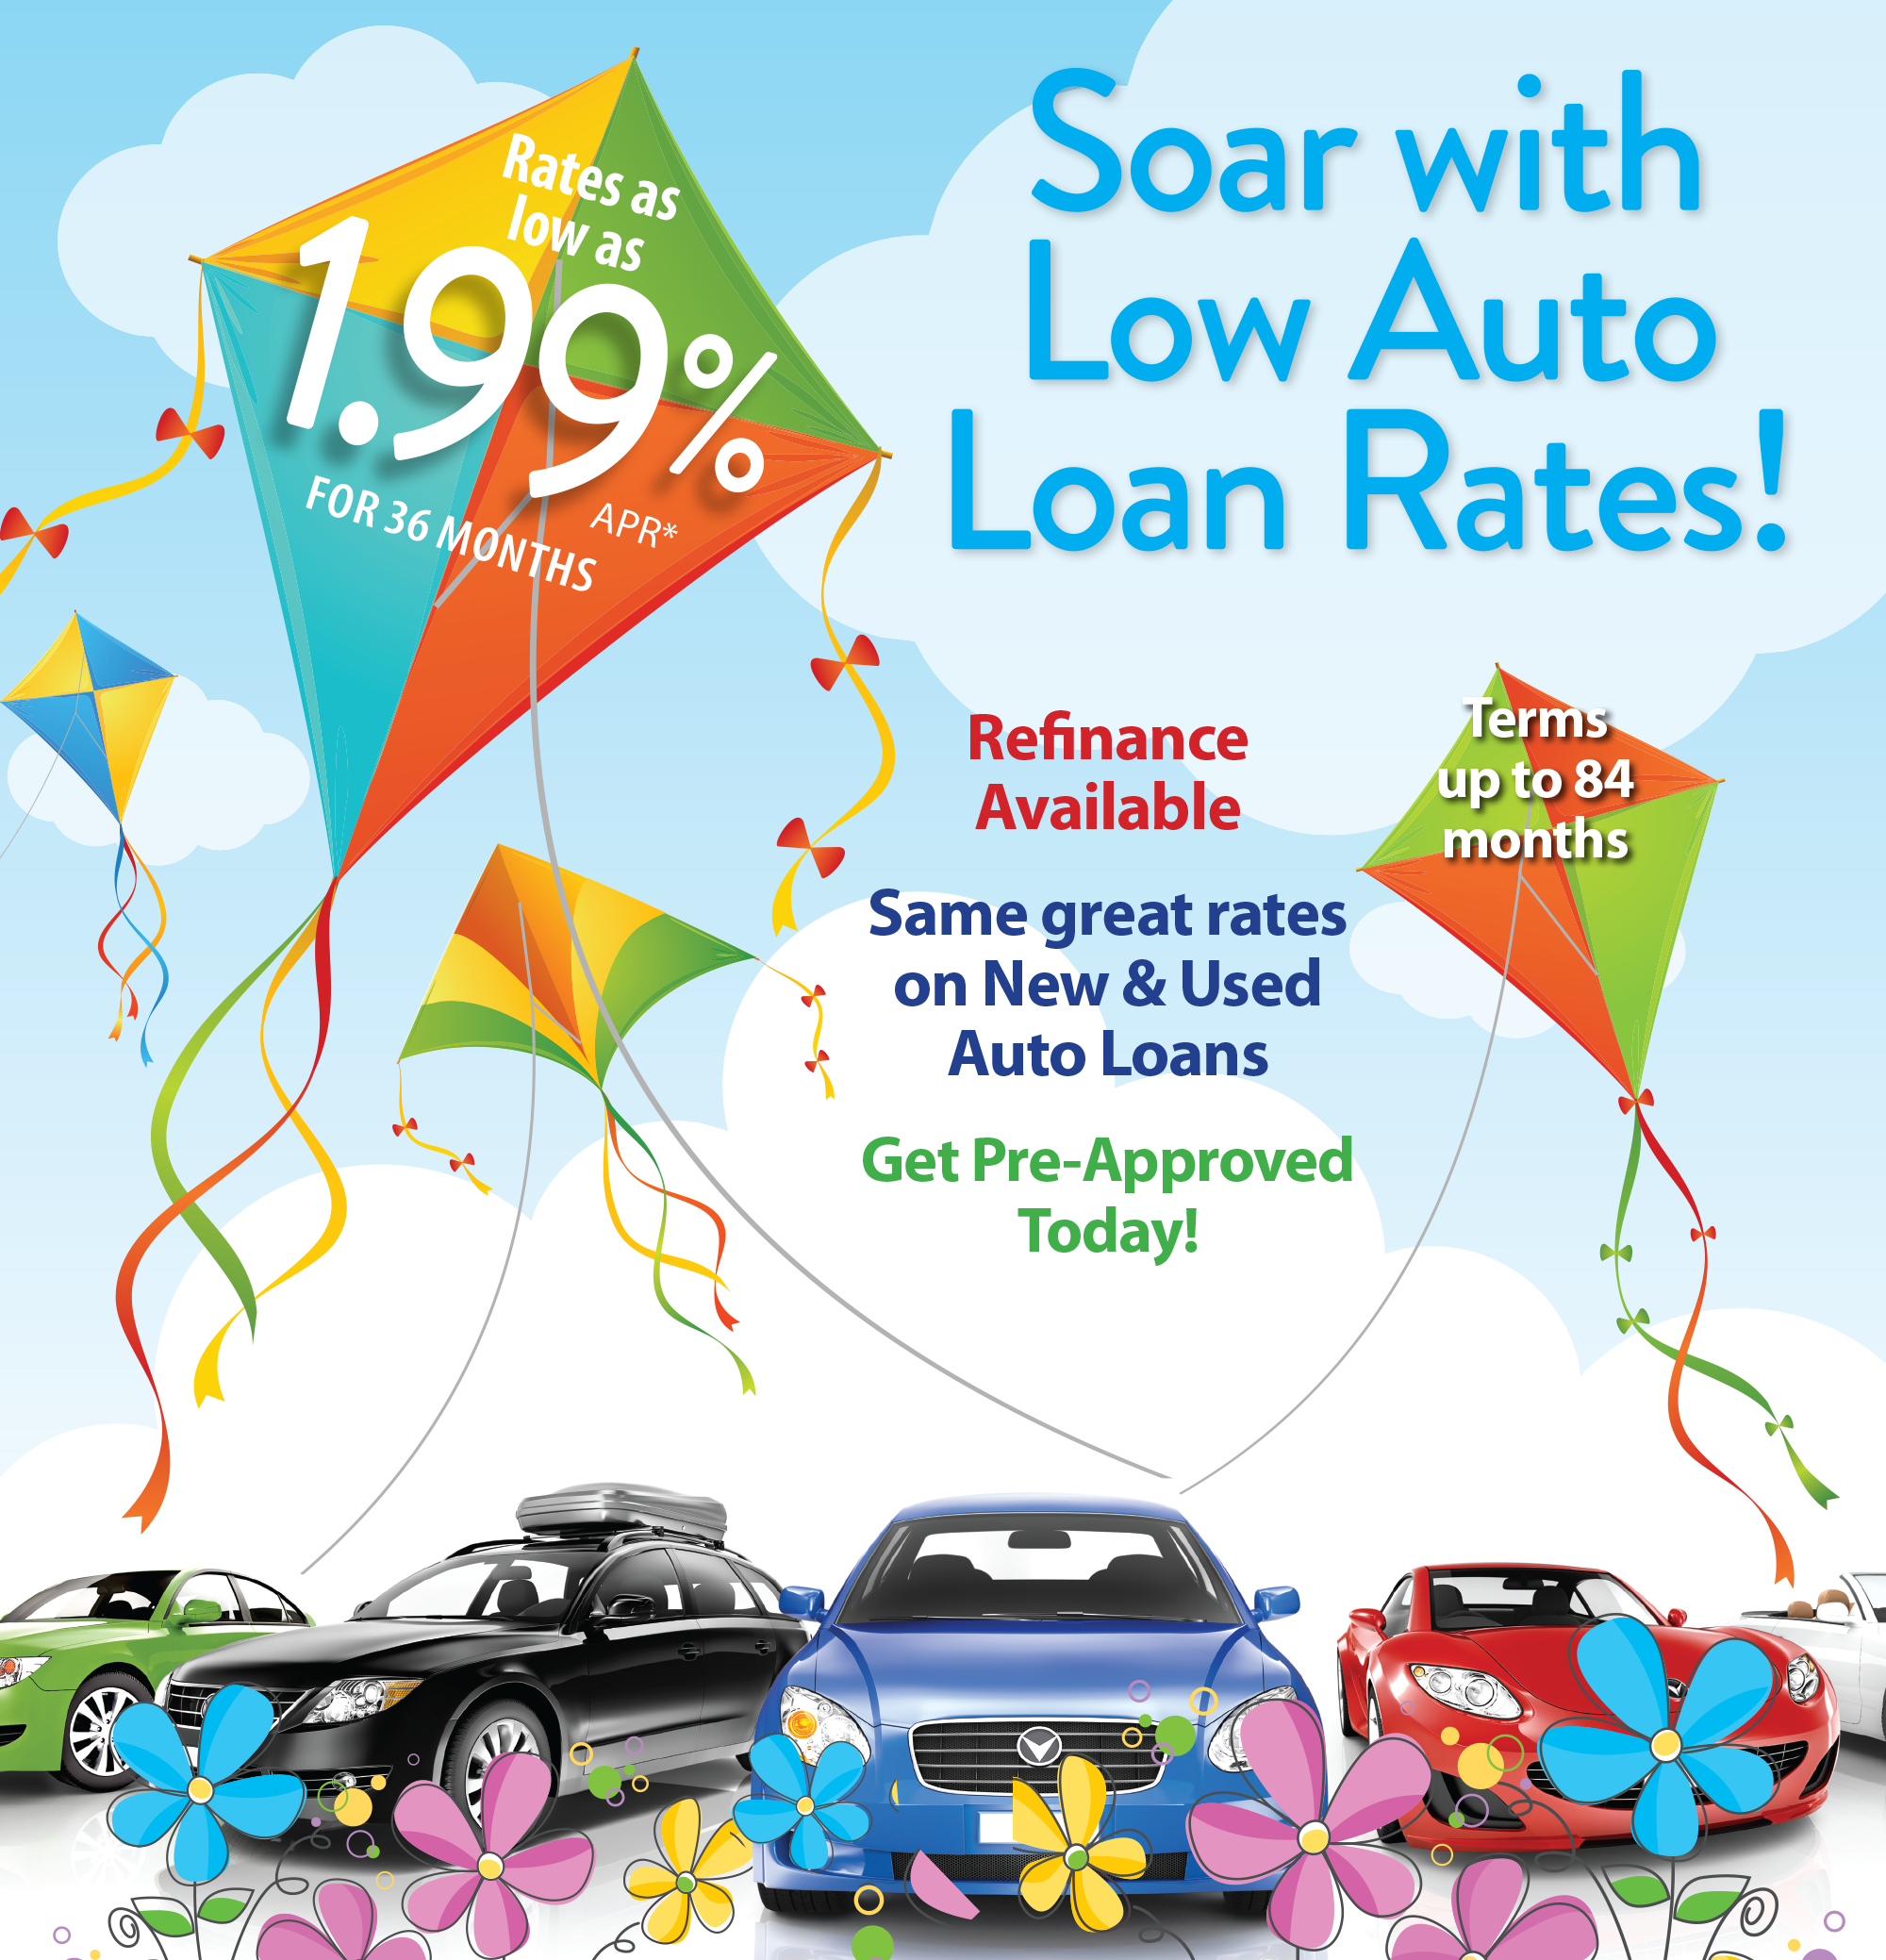 Soar with Low Auto Loan Rates! Terms up to 84 months. Refinance available. Same great rates on new and used auto loans. Get pre-approved today!   *apr = annual percentage rate. Rates based on an evaluation of your credit score and your actual rate may vary. Rates subject to change without notice and not all applicants will qualify. Other rates and terms available. Payment Examples: 36 monthly payments of $28.64 for every $1,000 financed. 84 monthly payments of $13.67 for every $1,000 financed.